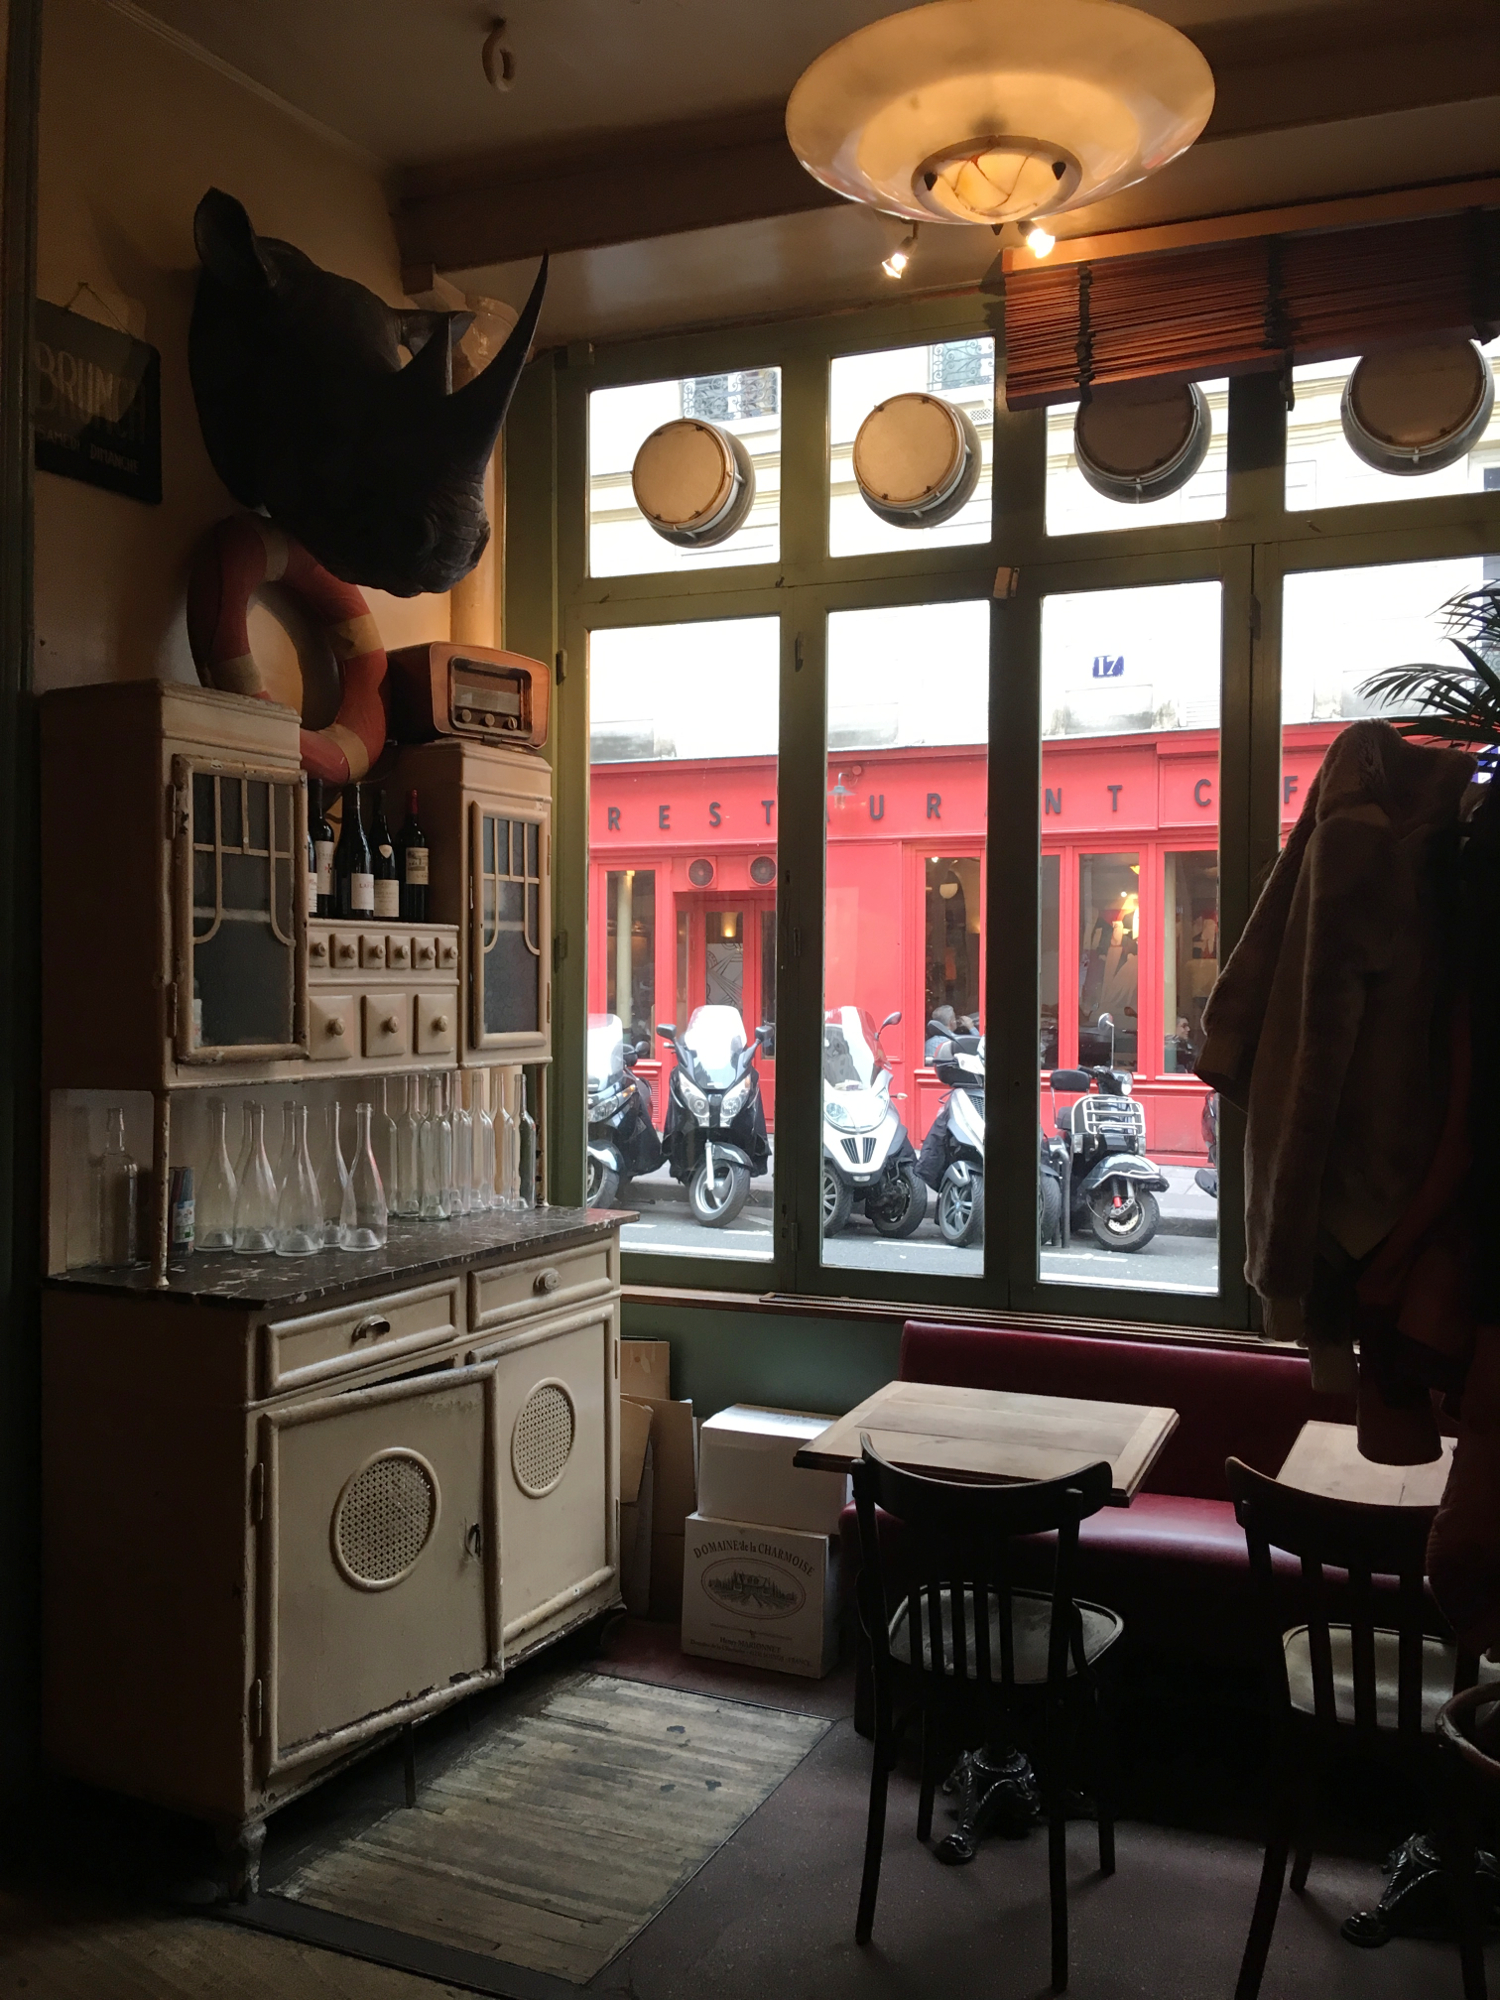 rocaille-blog-paris-cafe-de-lindustrie-restaurant-where-to-eat-5